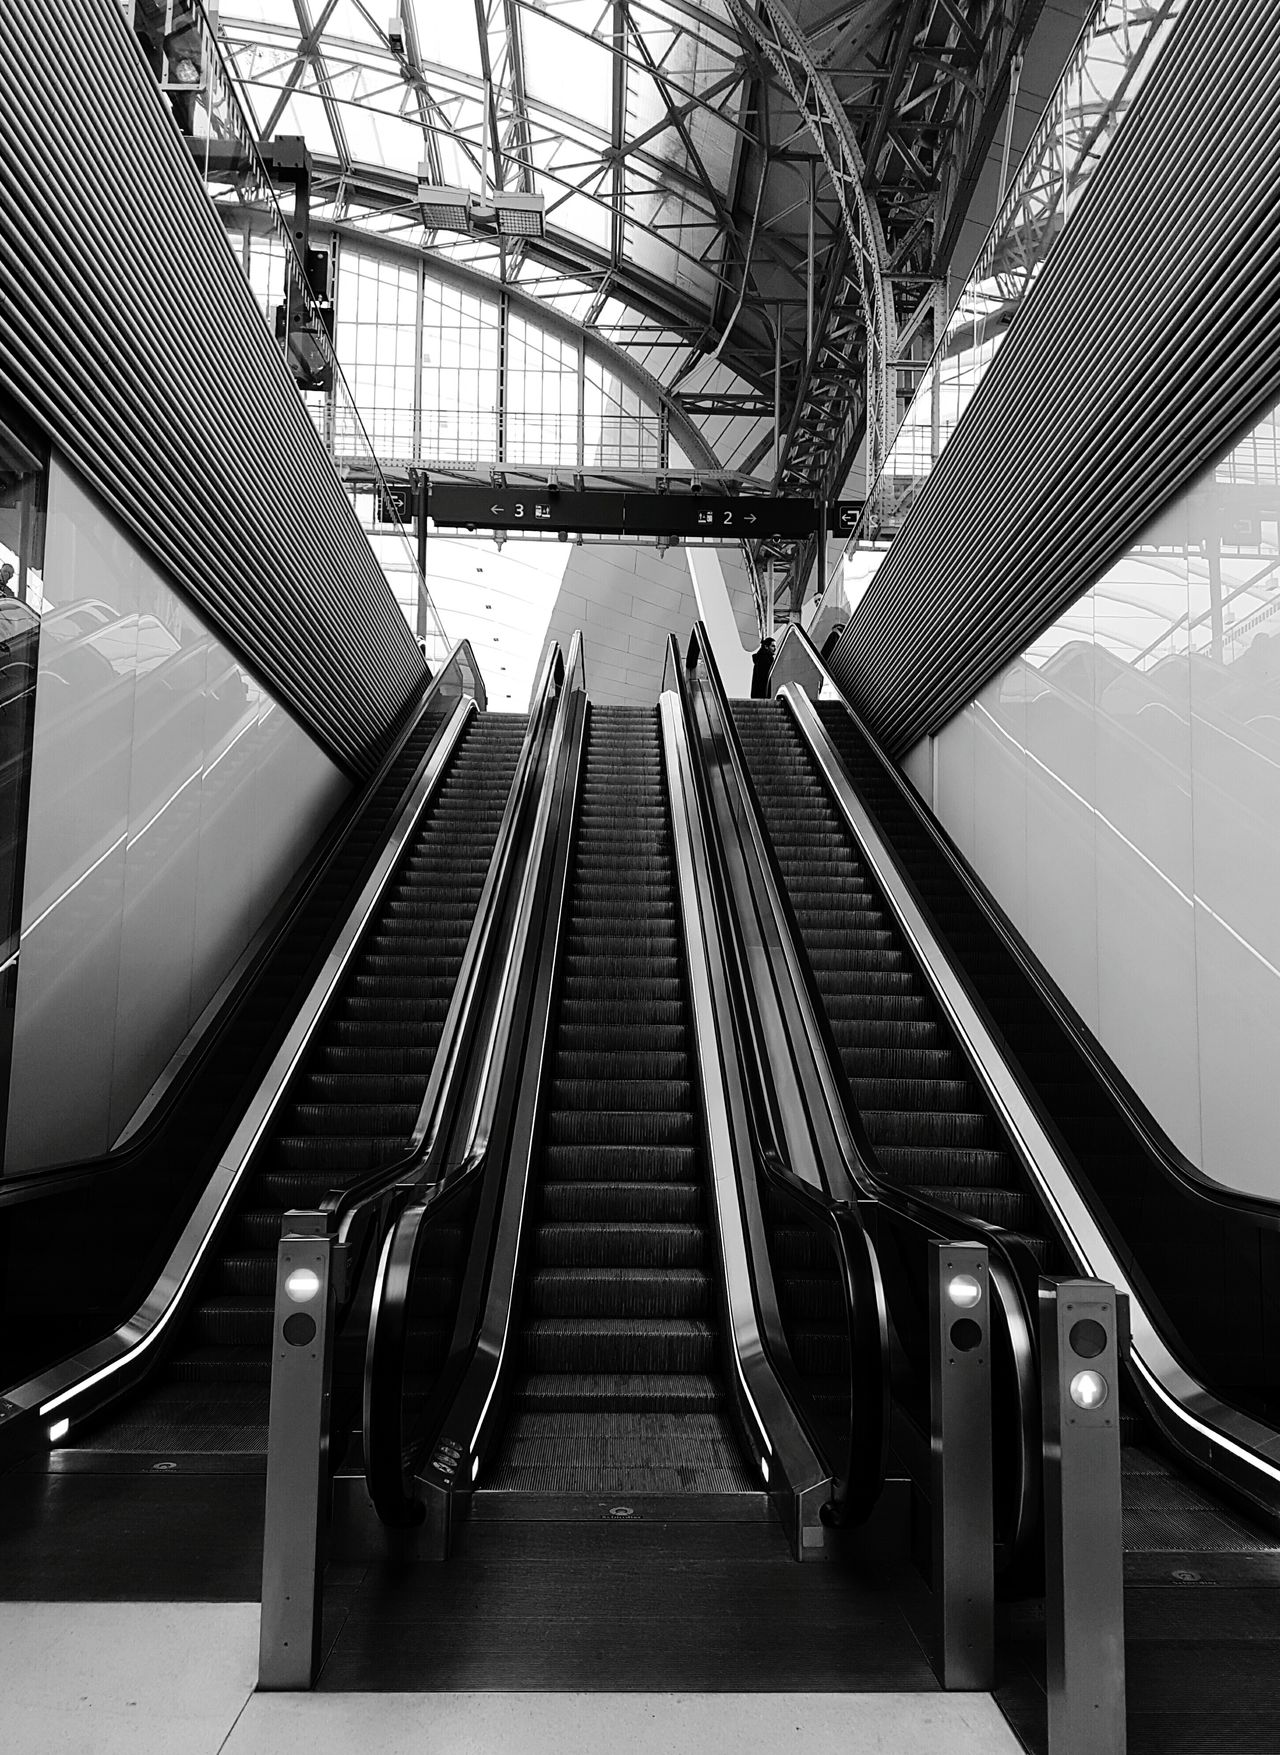 Technology No People Hanging Out Architecture Walking Around Check This Out City Modern Salisburgo Eye4photography  Stairs S7photo Urban Geometry Modern Architecture Hauptbahnhof Capture The Moment Salzburg, Austria S7 Photography Salzburg City Trainstation CaptureTheMoment Buildings Indoors